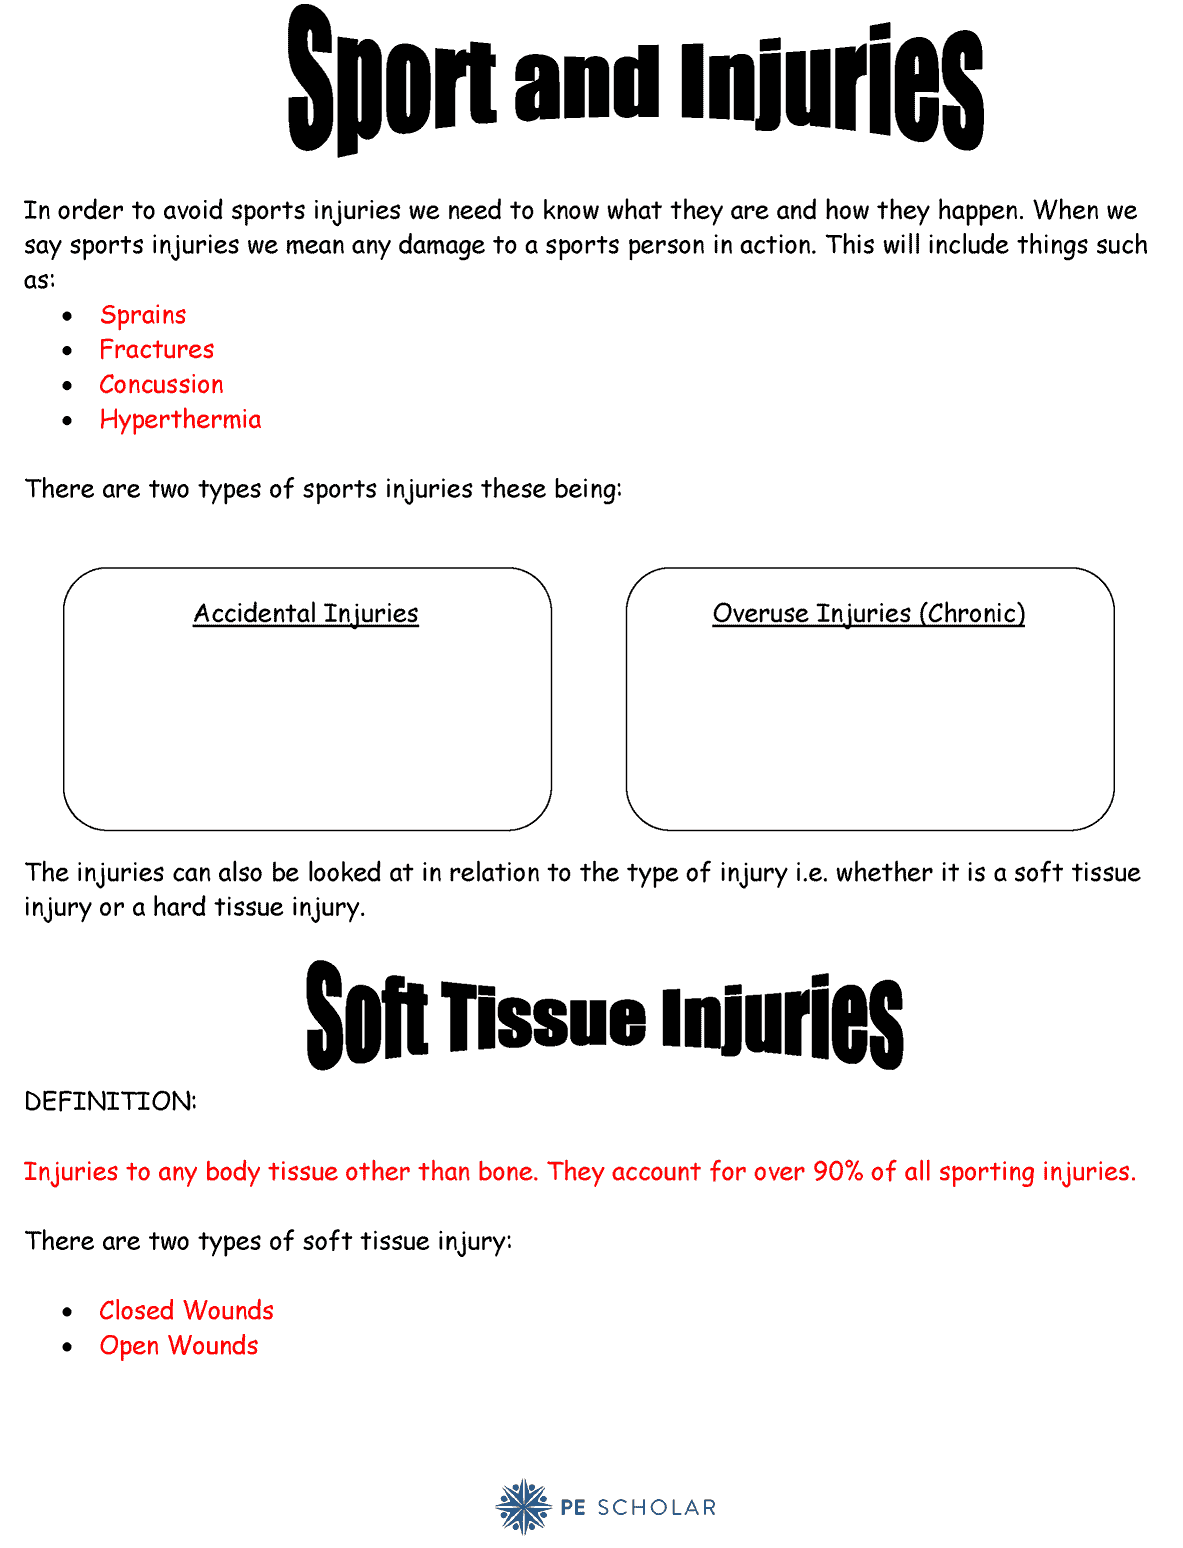 Sports Injury Worksheet For Gcse Or Btec Students